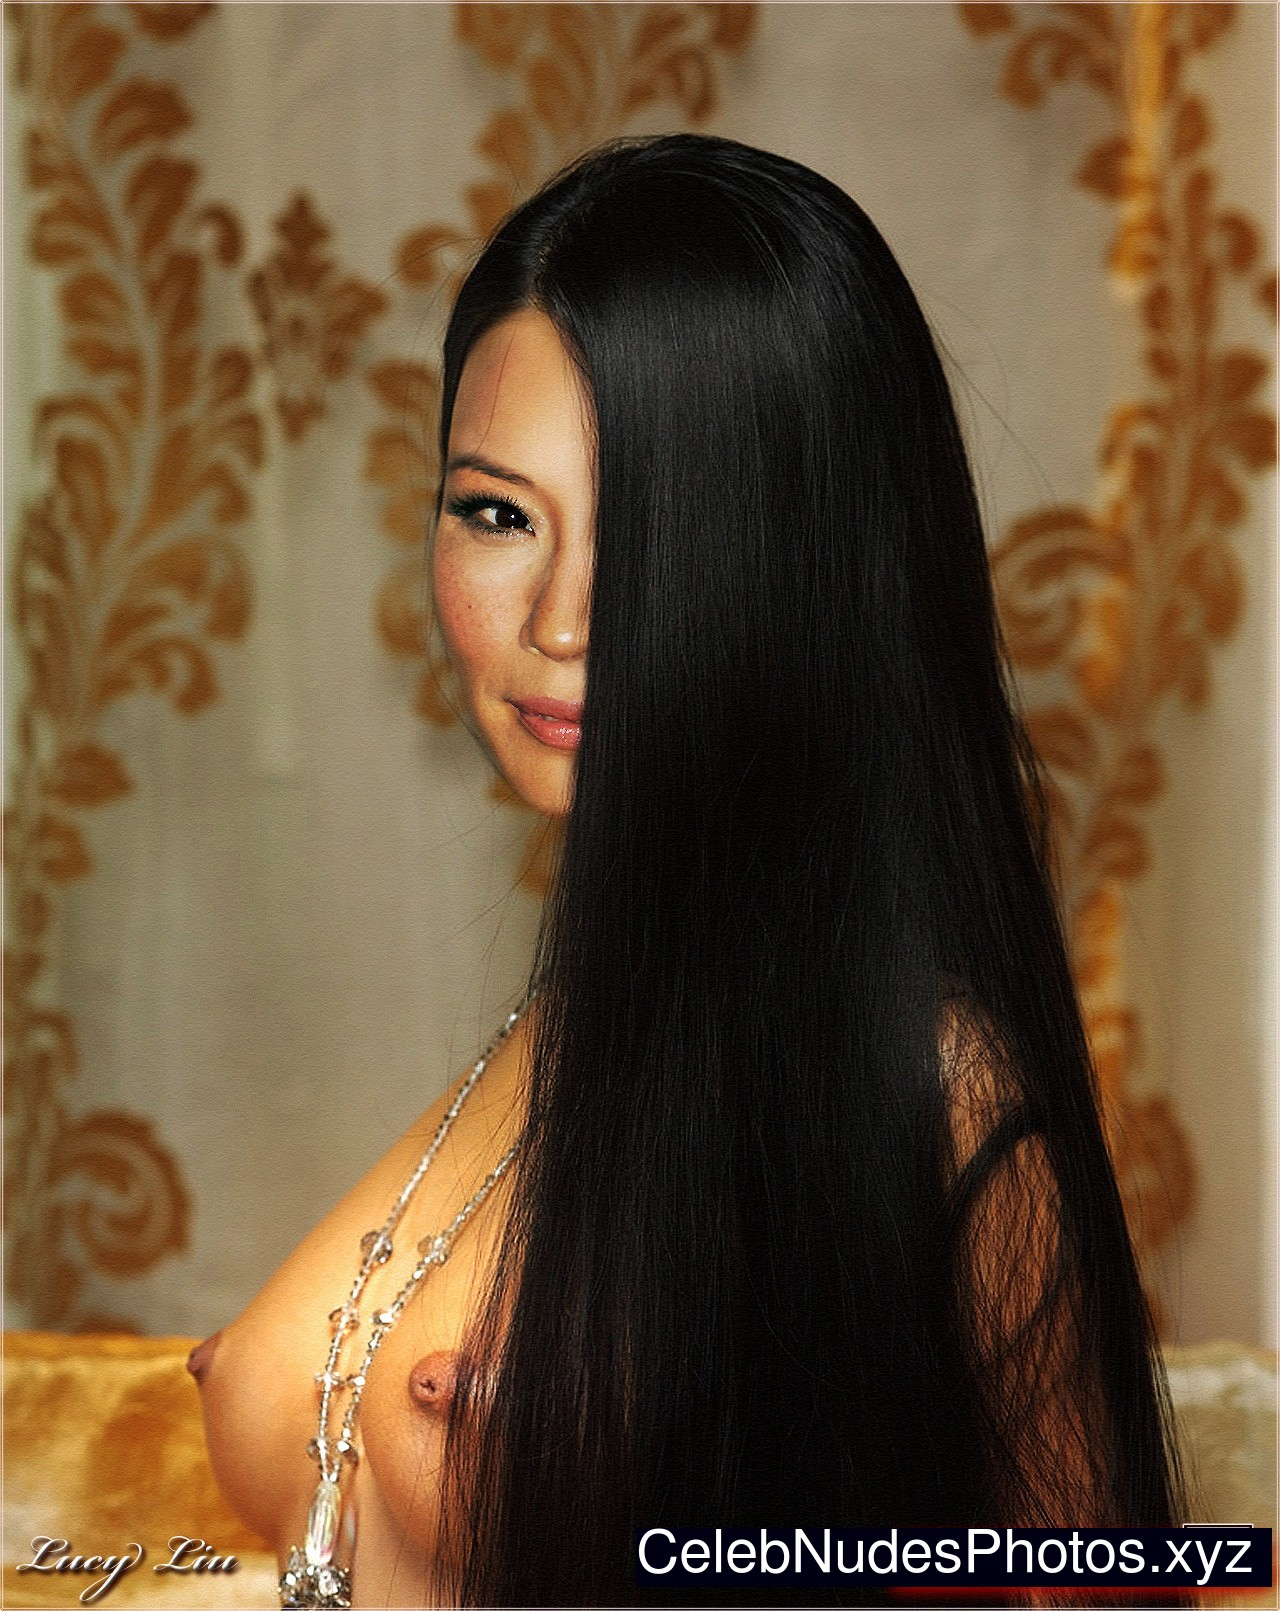 Lucy Liu Celebrity Leaked Nude Photo sexy 13